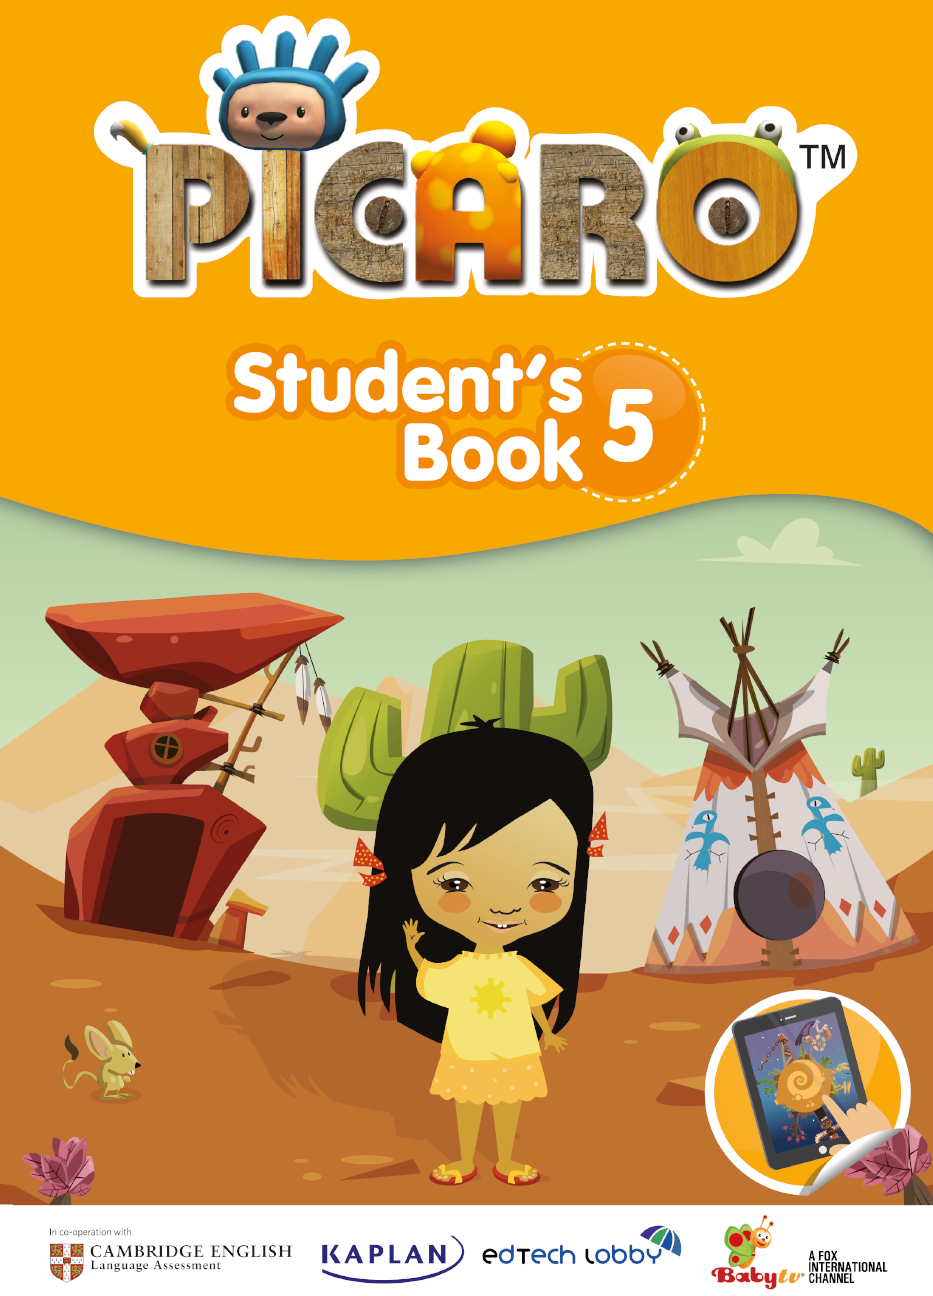 Picaro Student's Book Unit 5